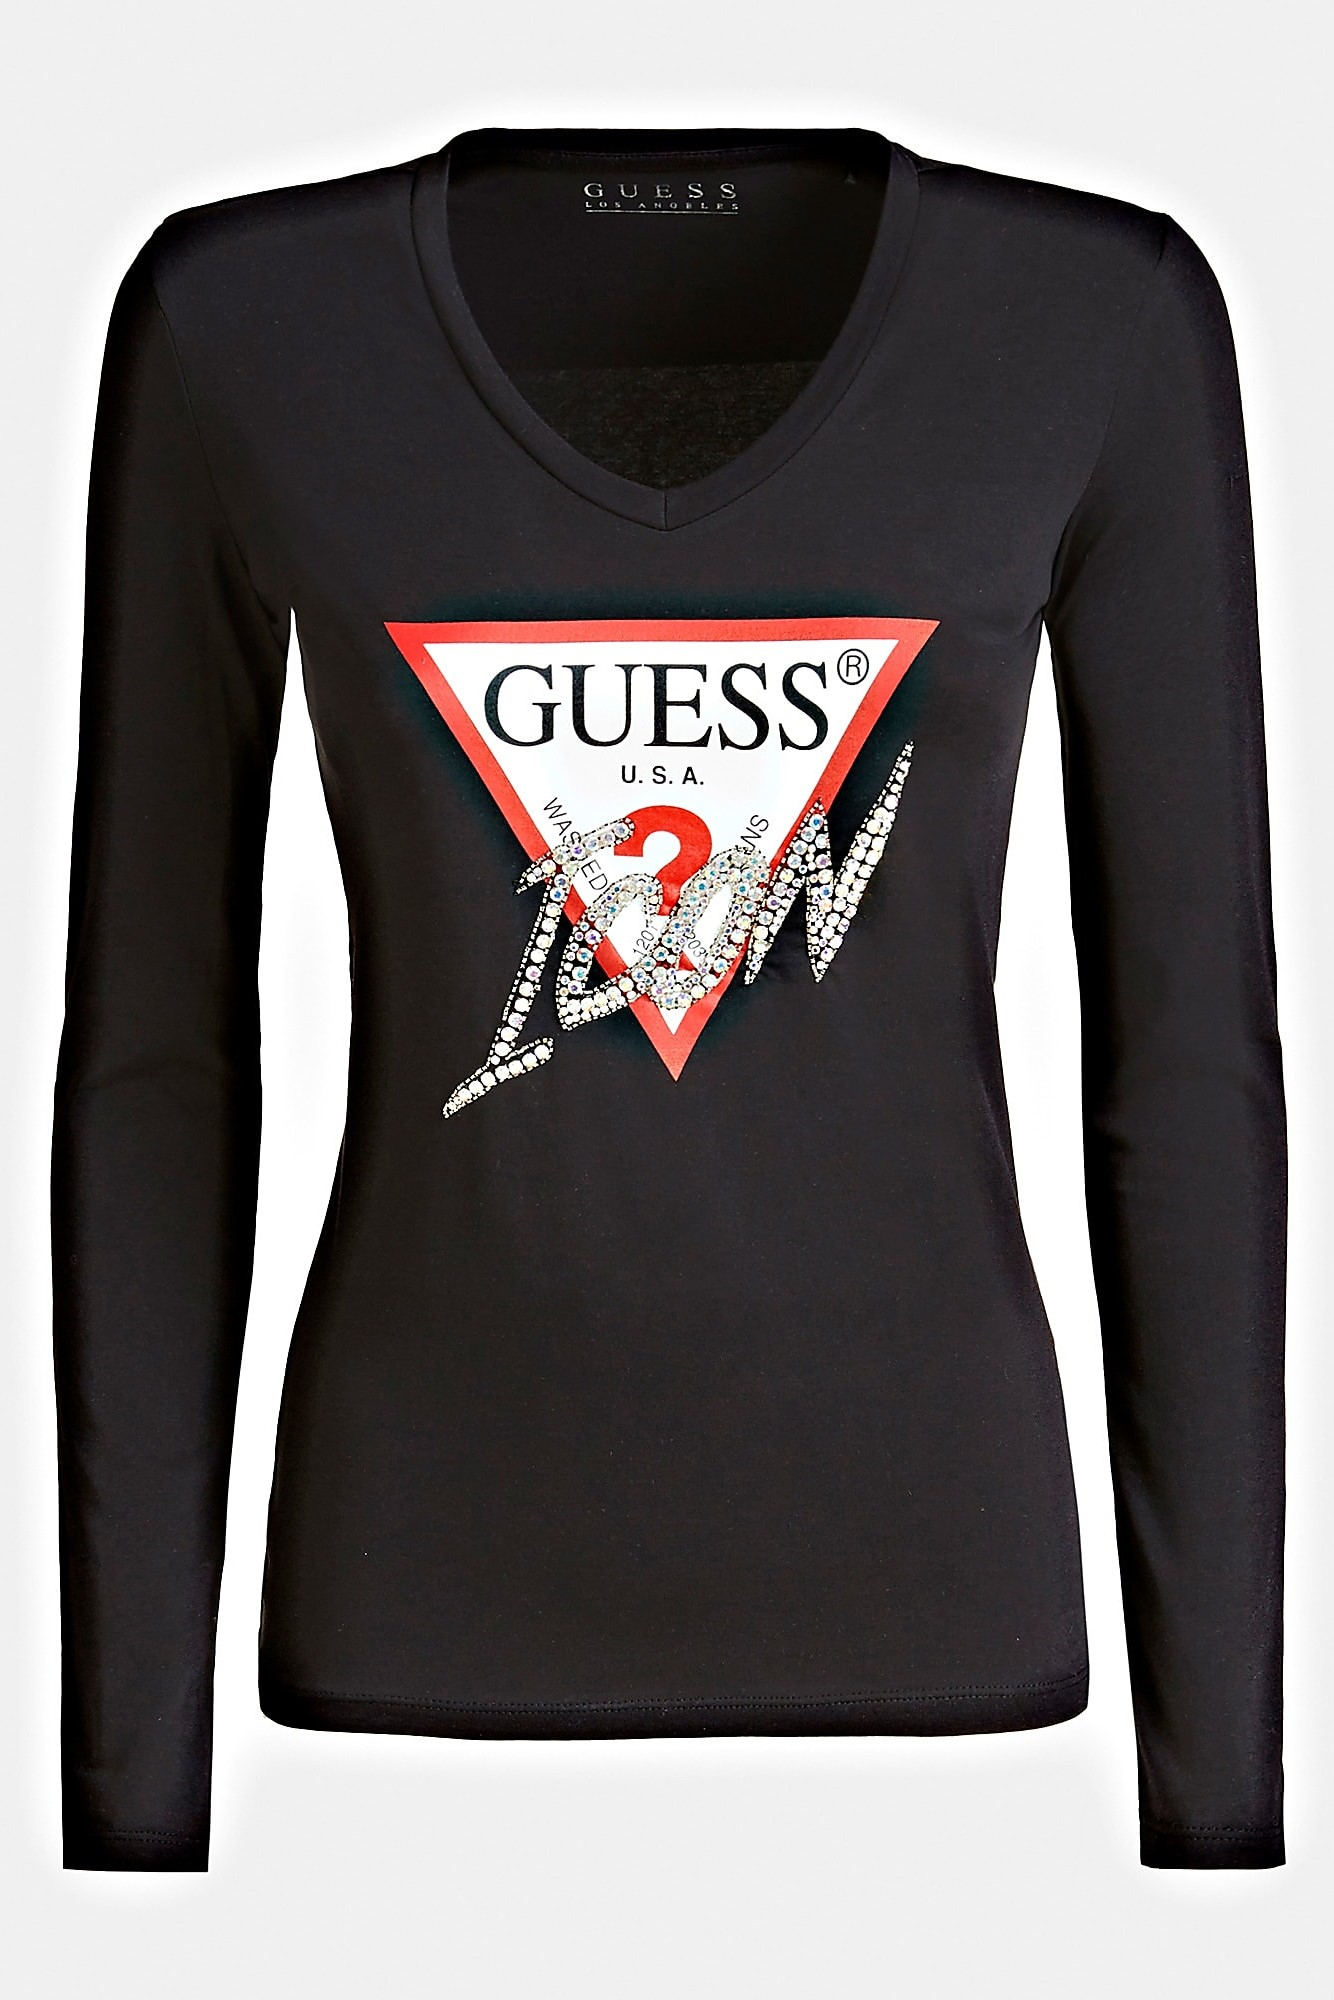 guess black t shirt icon logo t shirt women s t shirts tops differenta com guess black t shirt icon logo t shirt